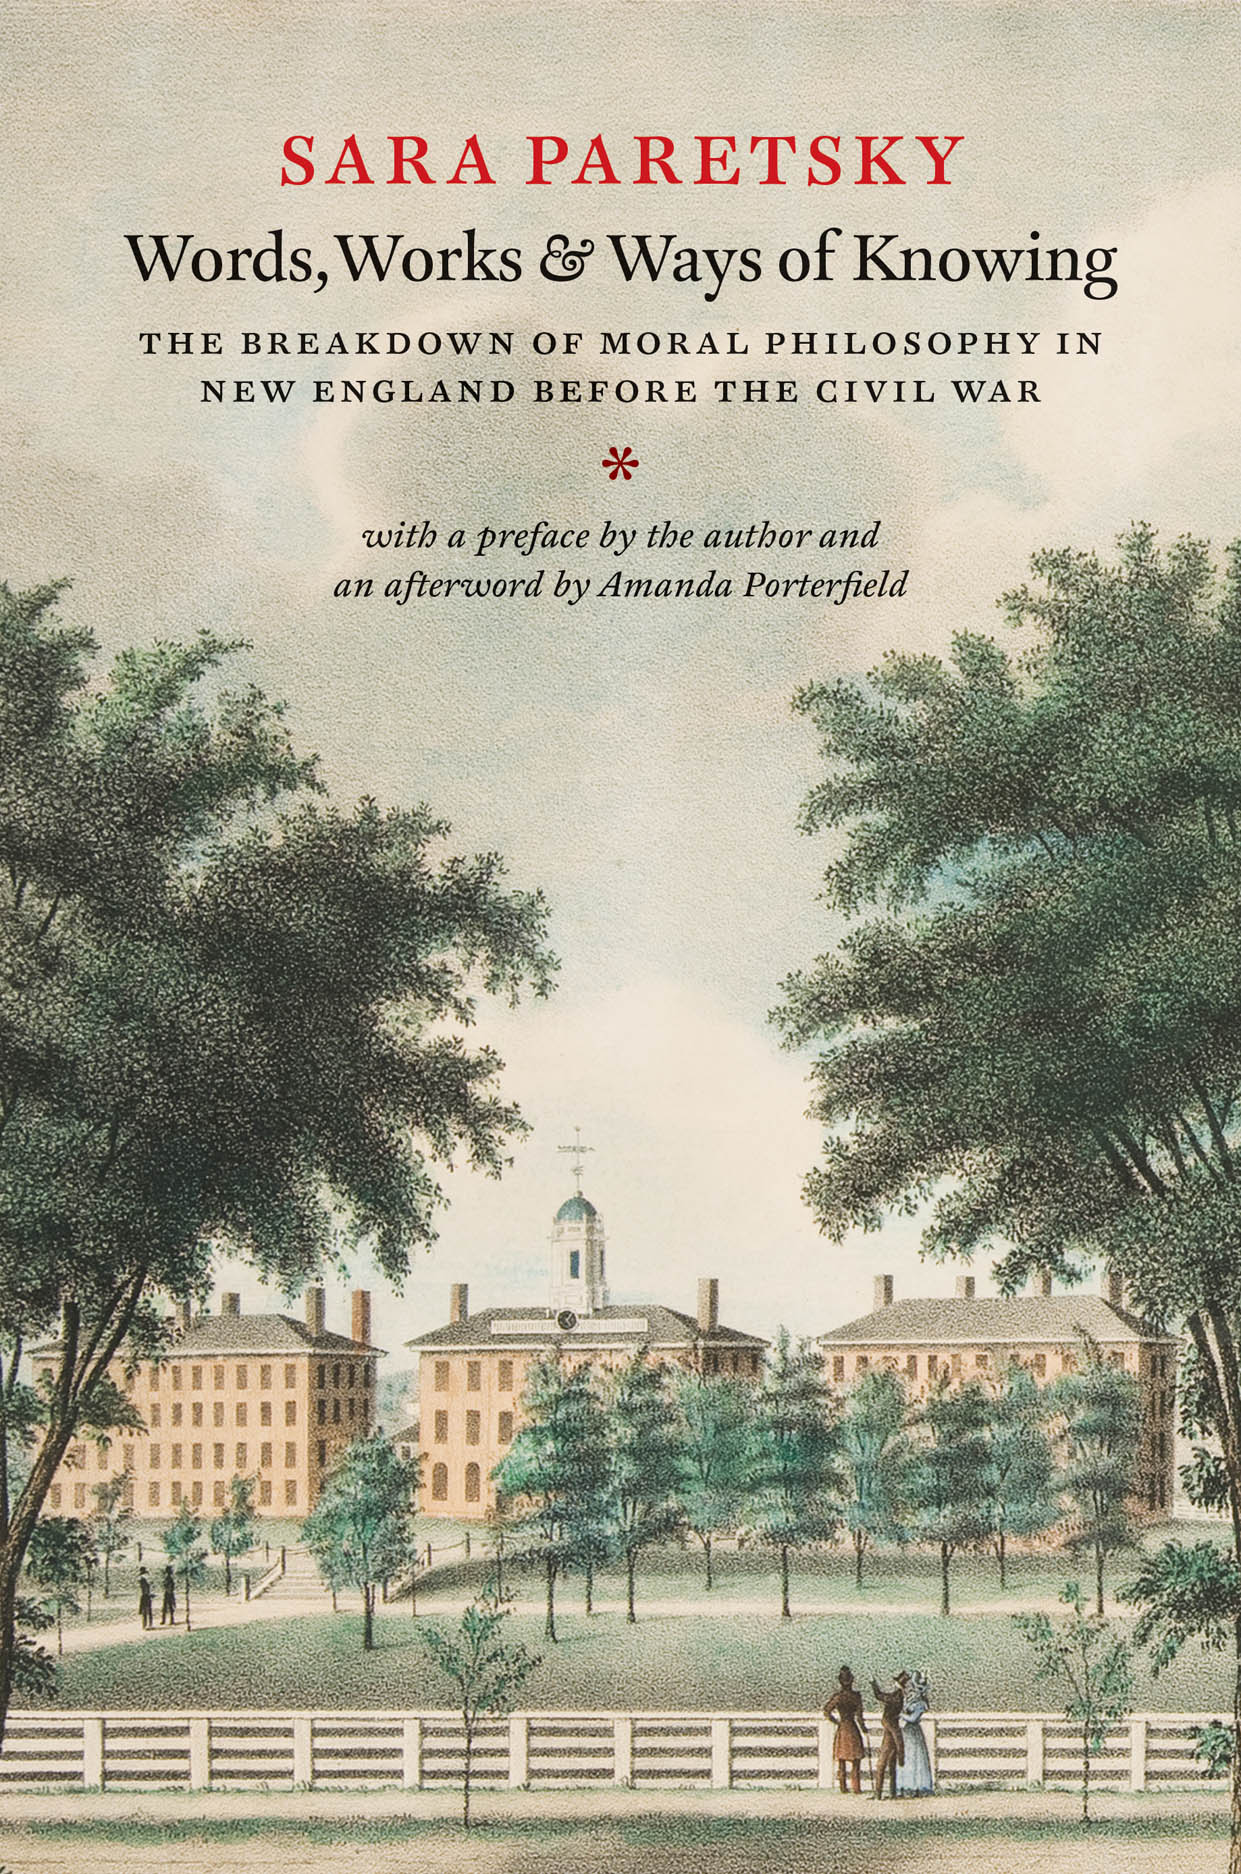 Words, Works, and Ways of Knowing: The Breakdown of Moral Philosophy in New England before the Civil War